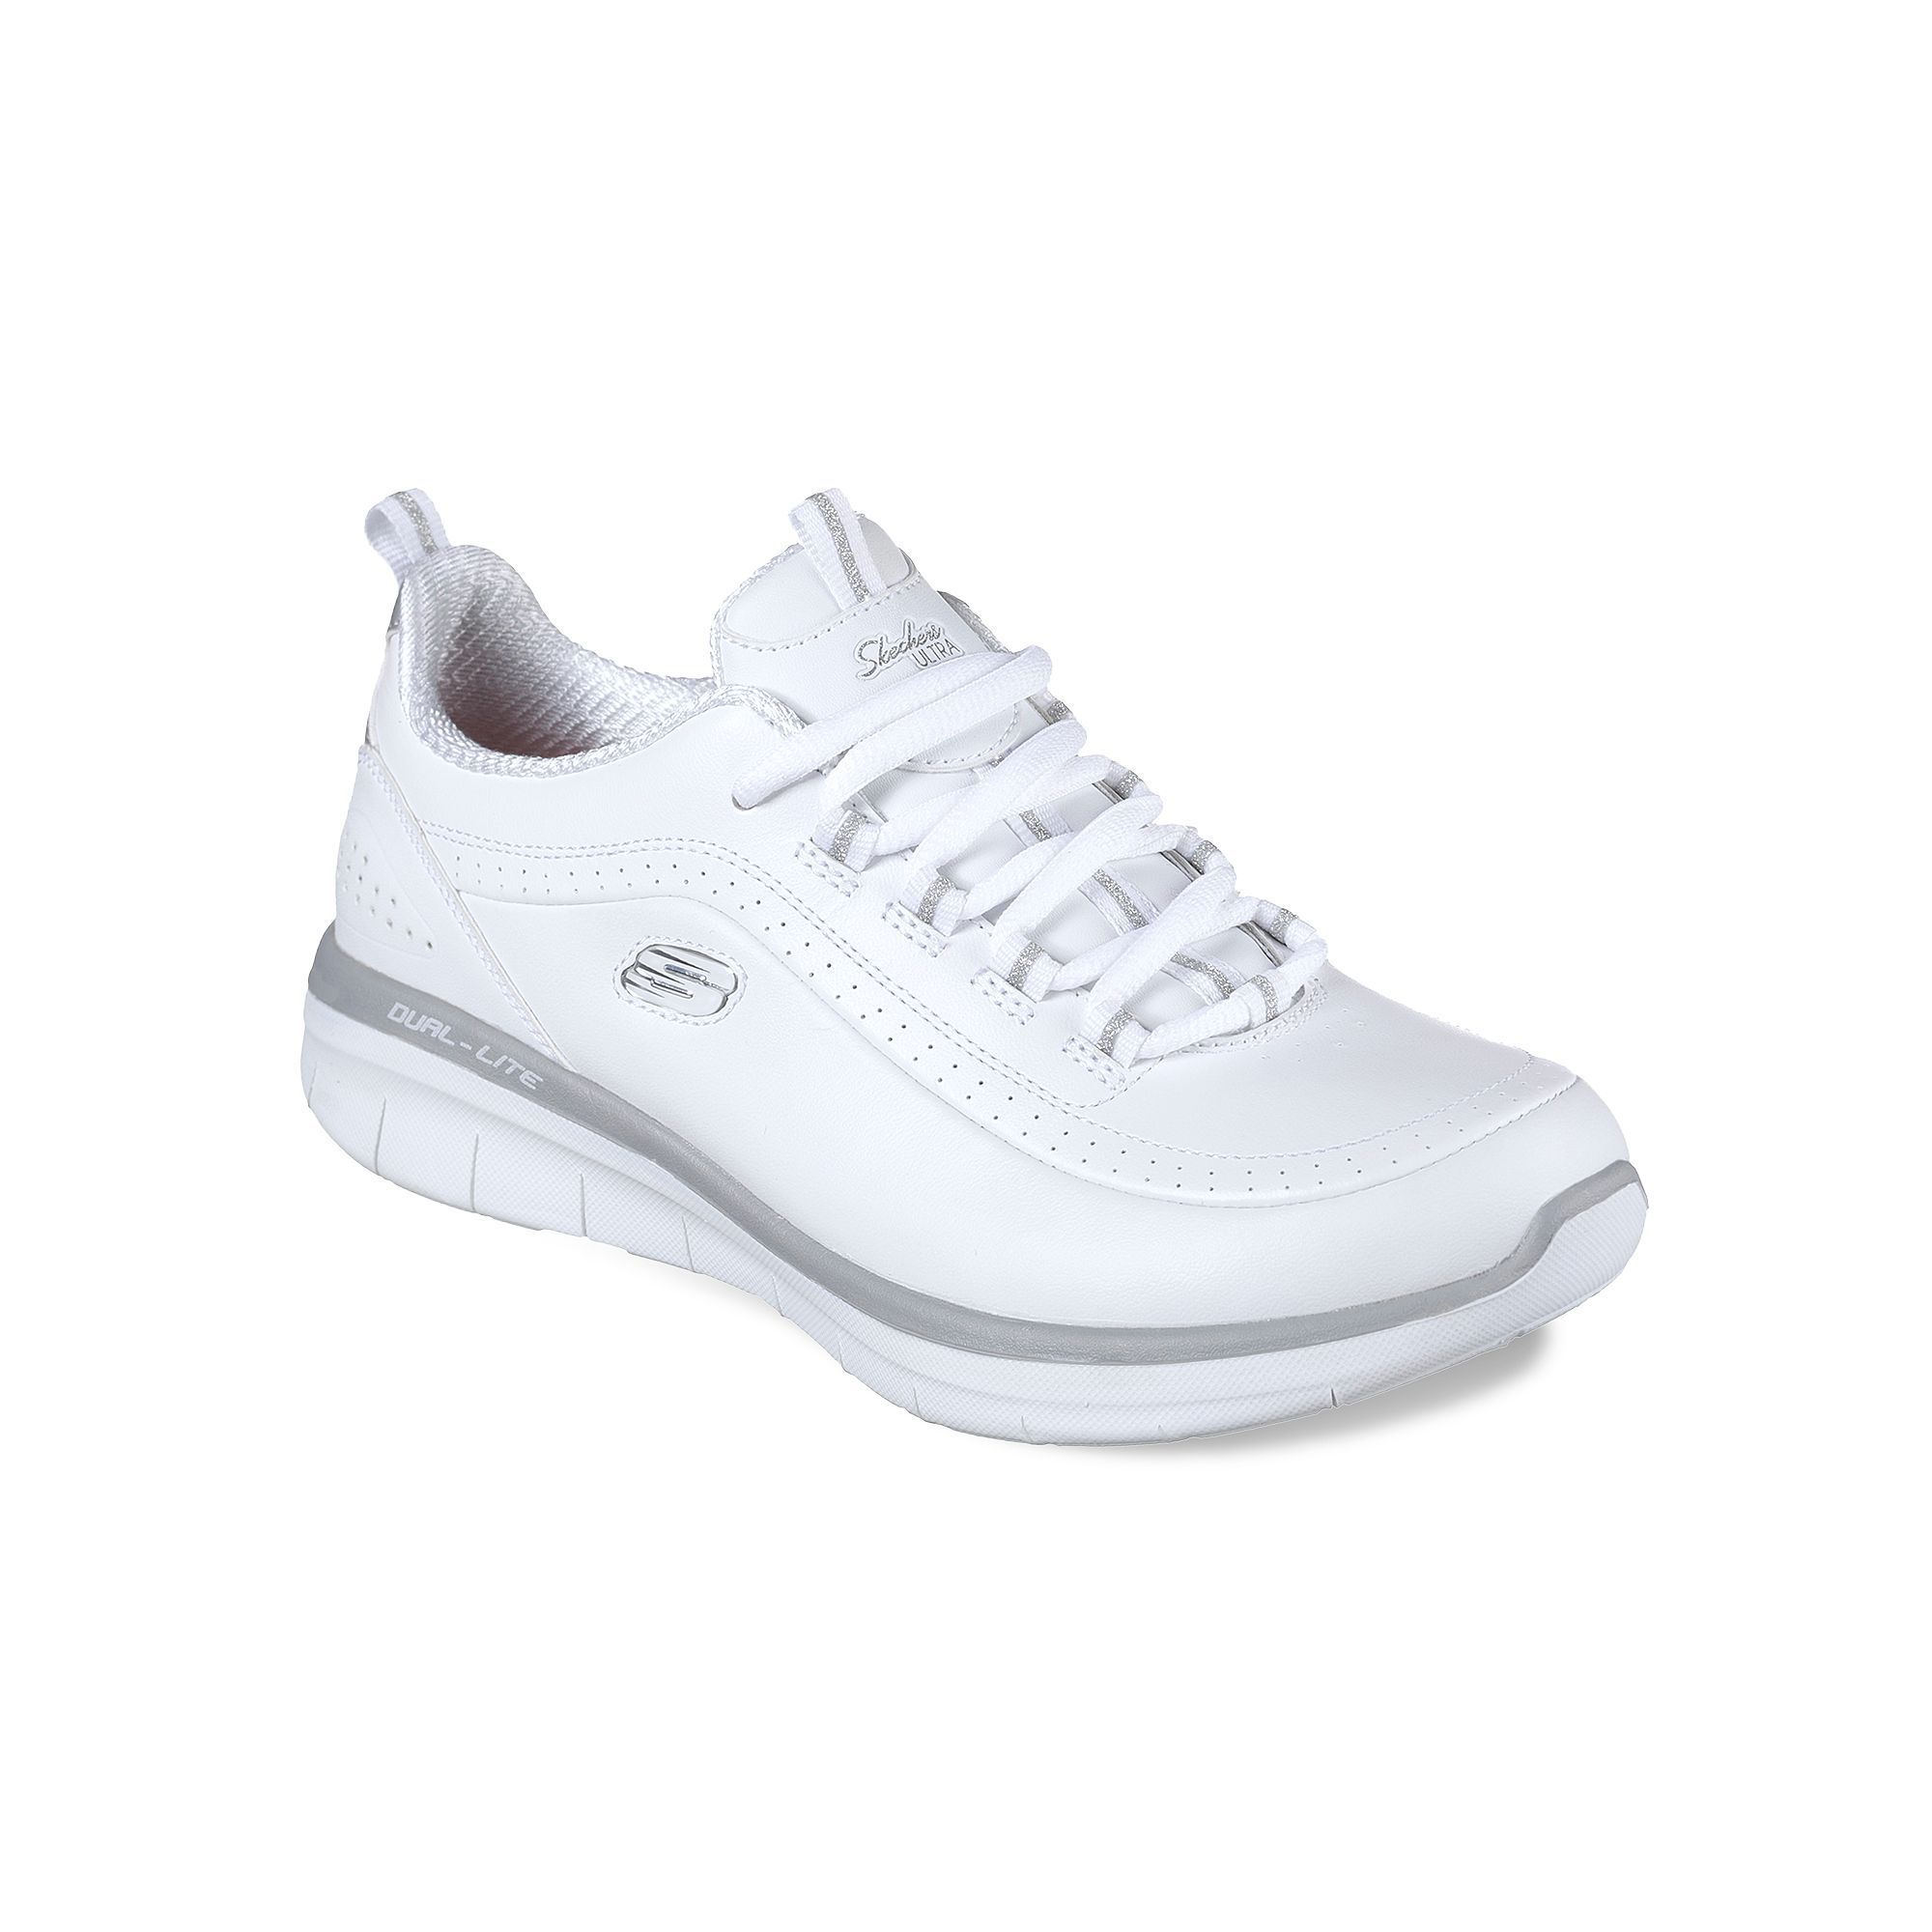 1a3ba305cc0 Skechers Synergy 2.0 Classic Women s Lace Up Sneakers in 2019 ...